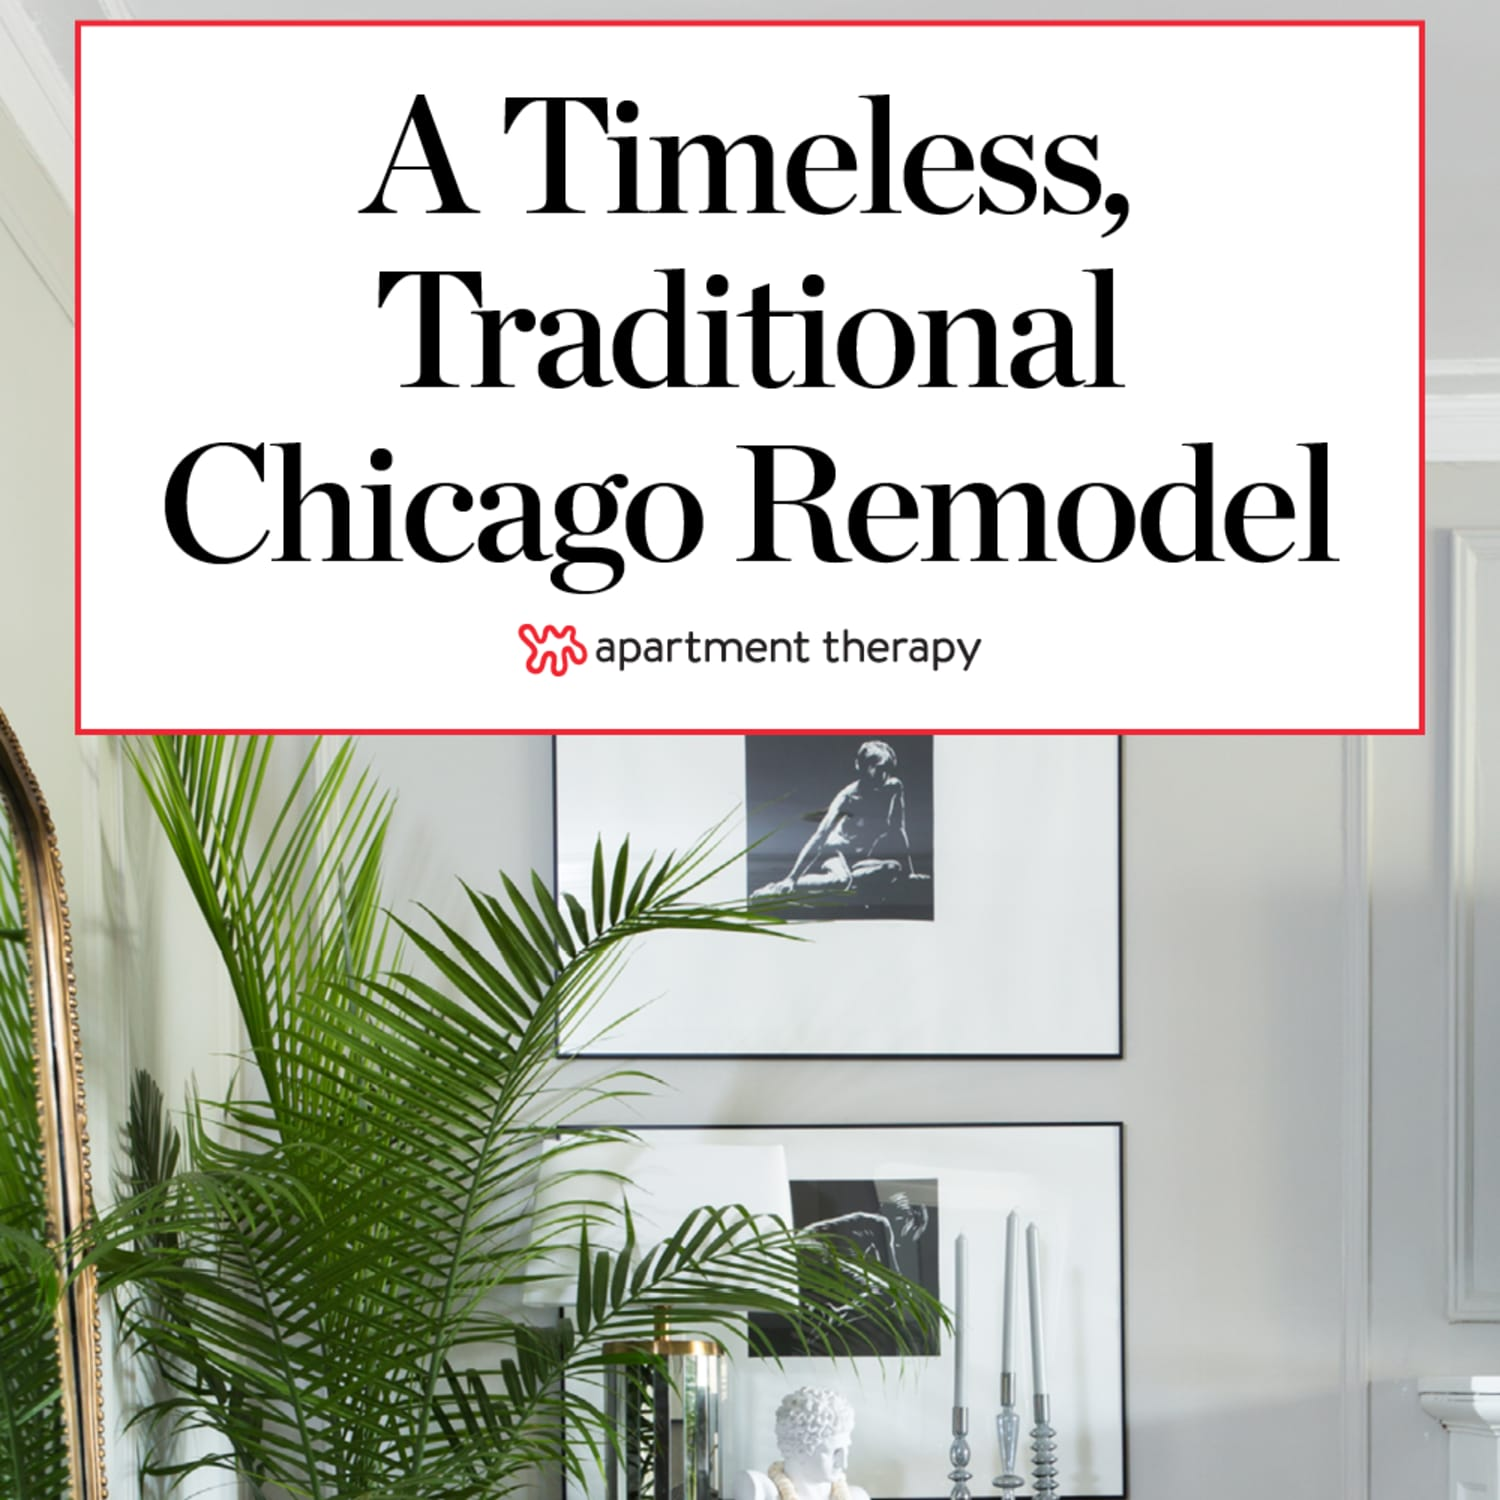 Remodeling Ideas in a Traditional Chicago Renovation